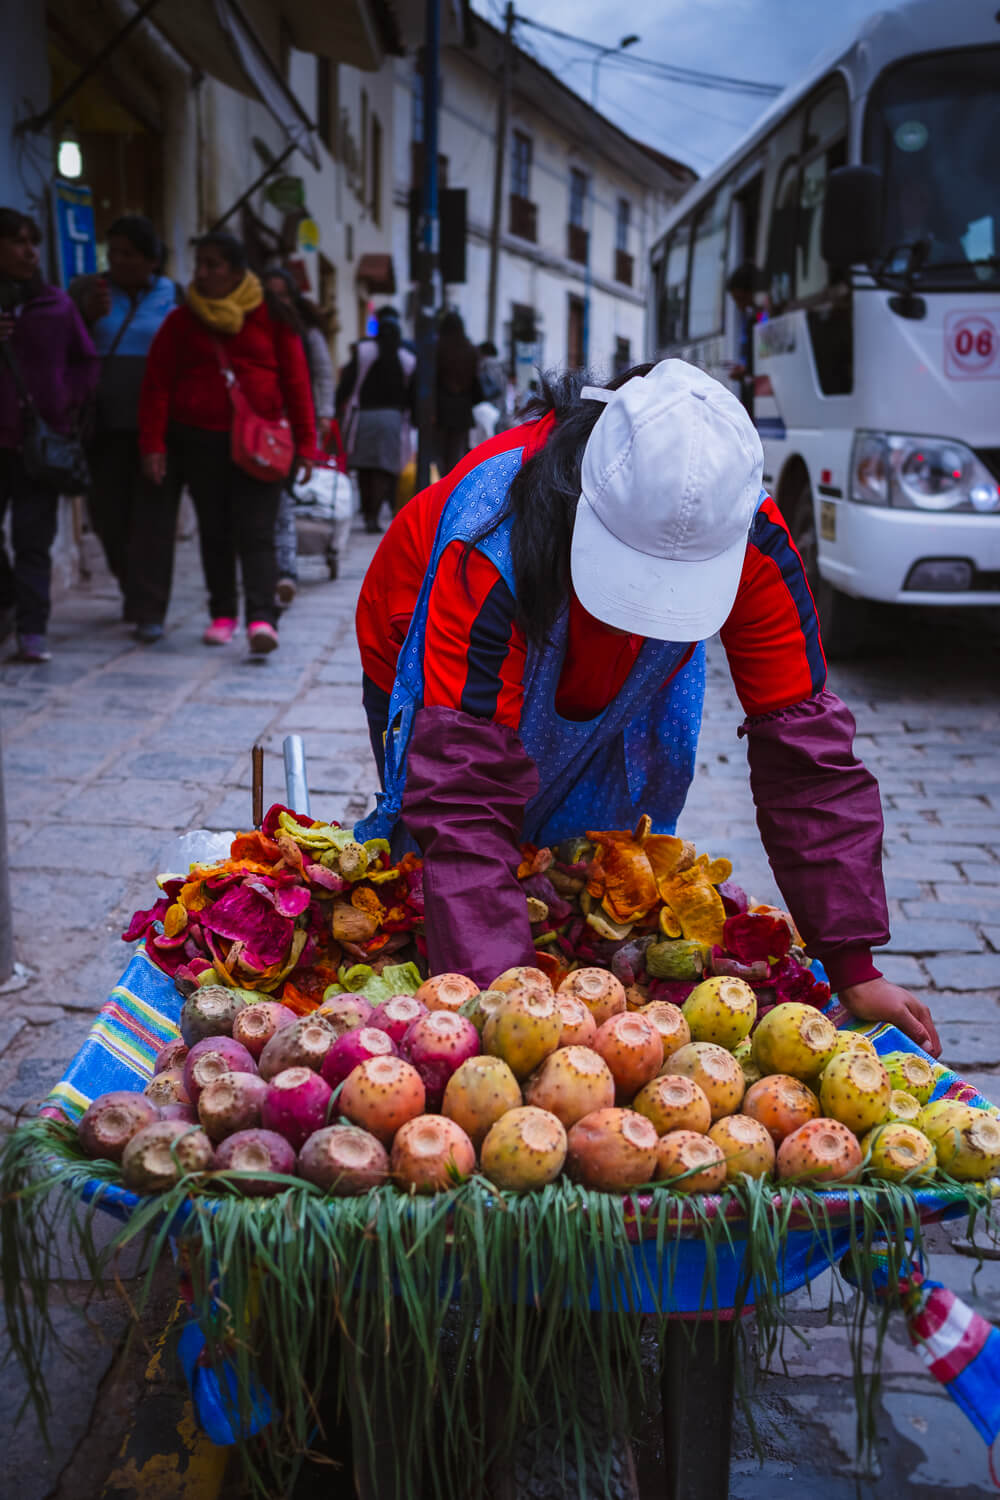 """Woman selling fruit, Cusco. Travel photography and guide by © Natasha Lequepeys for """"And Then I Met Yoko"""". #cusco #peru #photoblog #travelblog #peruitinerary #cuscoitinerary"""